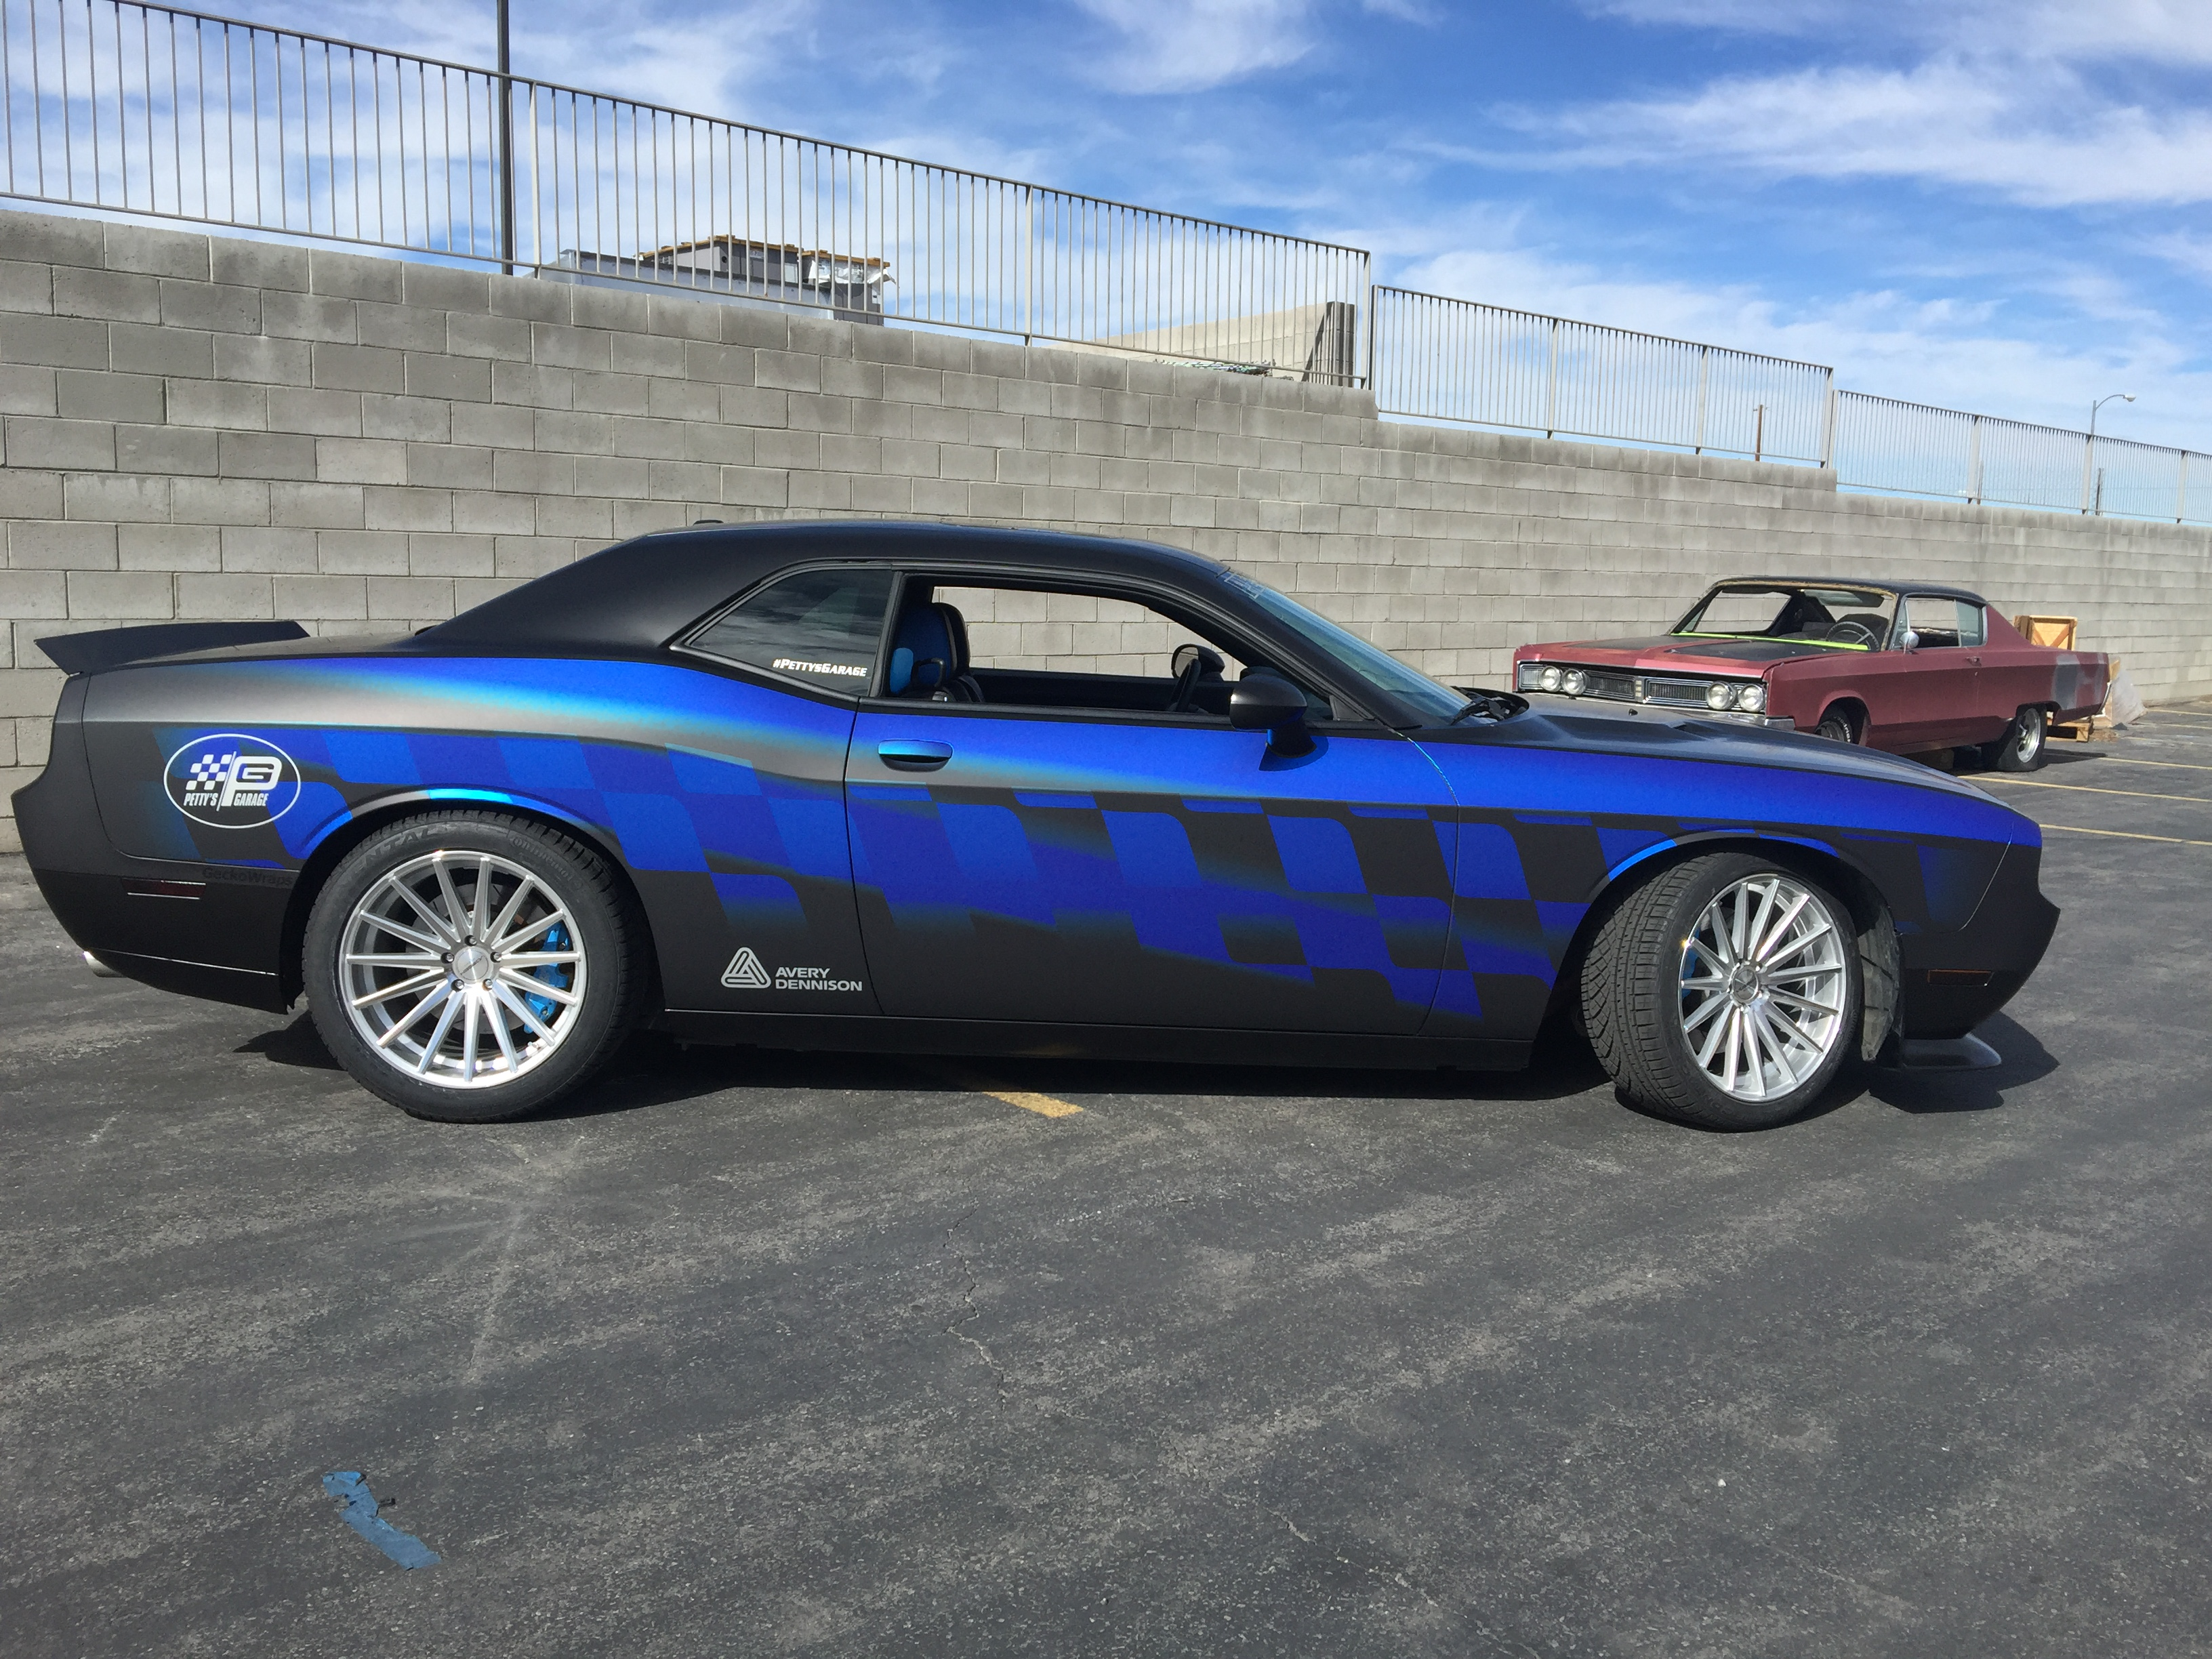 Printed Chrome Matte Wrap Geckowraps Las Vegas Vehicle Wraps